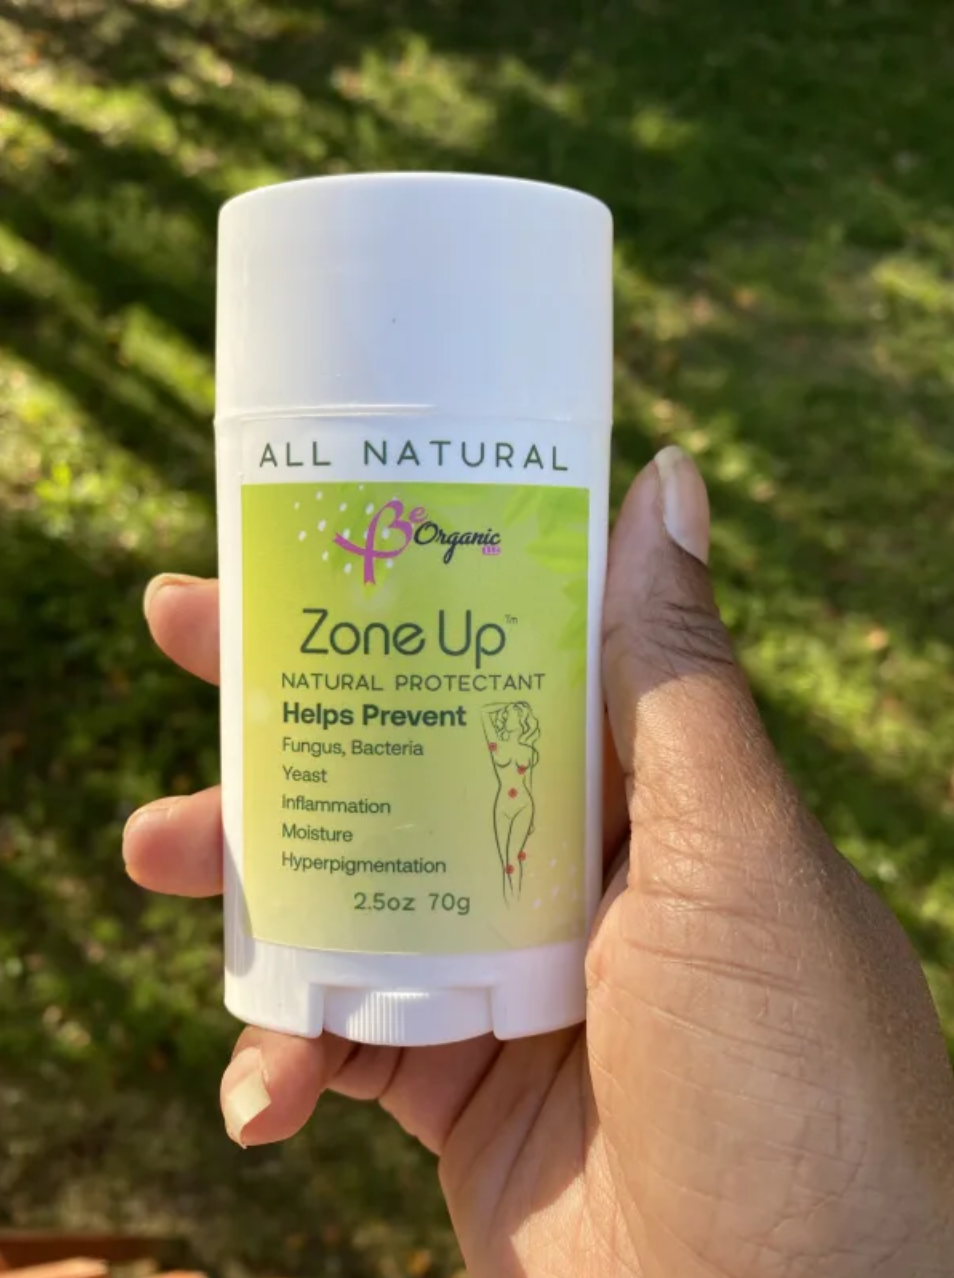 BeOrganic LLC Receives Positive Feedback for Zone Up, An All Natural Skin Protector